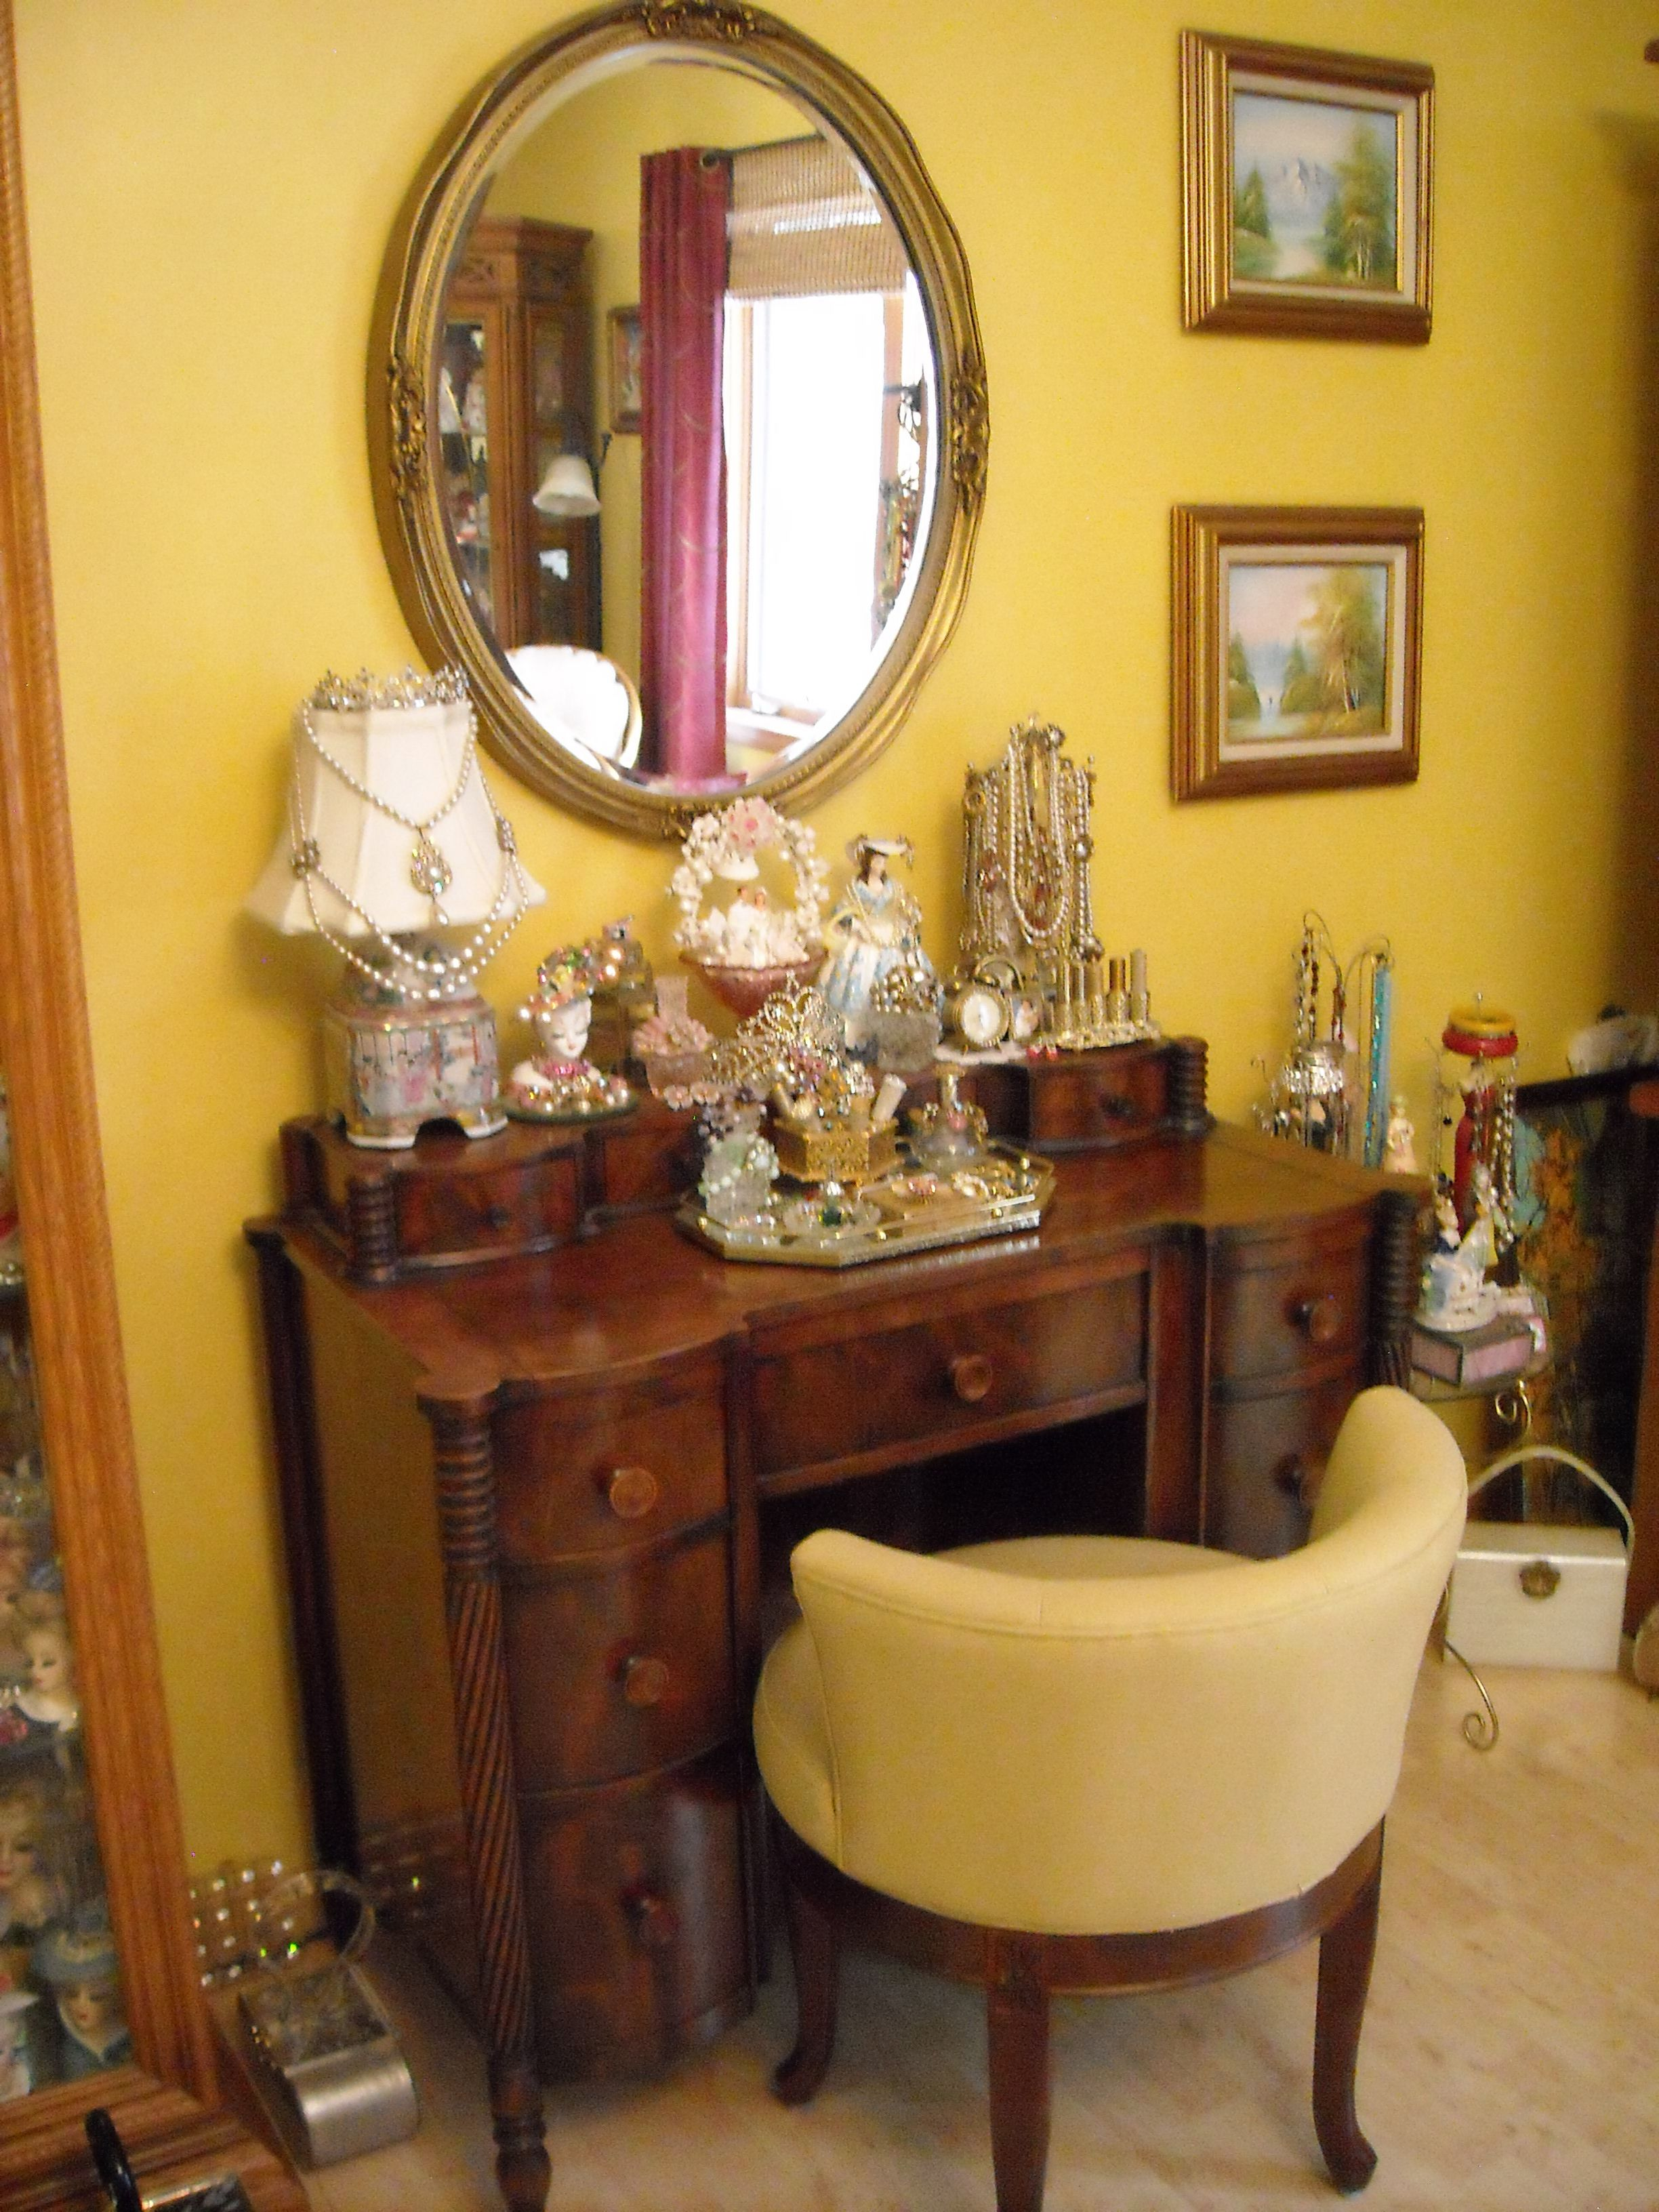 Vintage desk used as a vanity vanitydressing tables pinterest